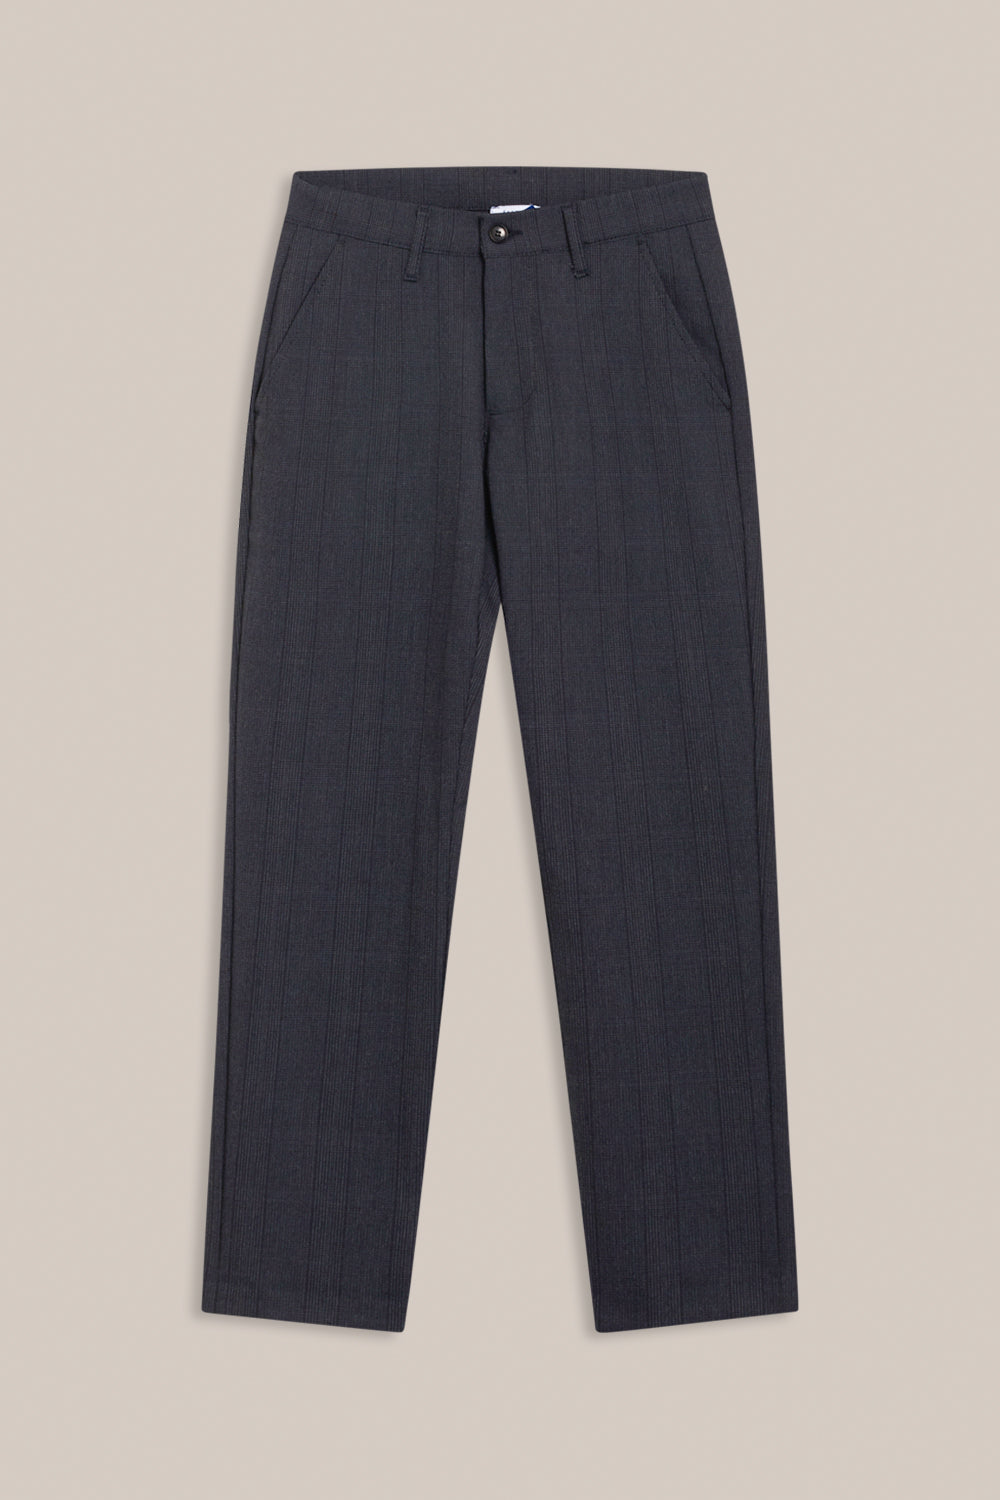 Formél Konrad Check Pant Pants Blue Check